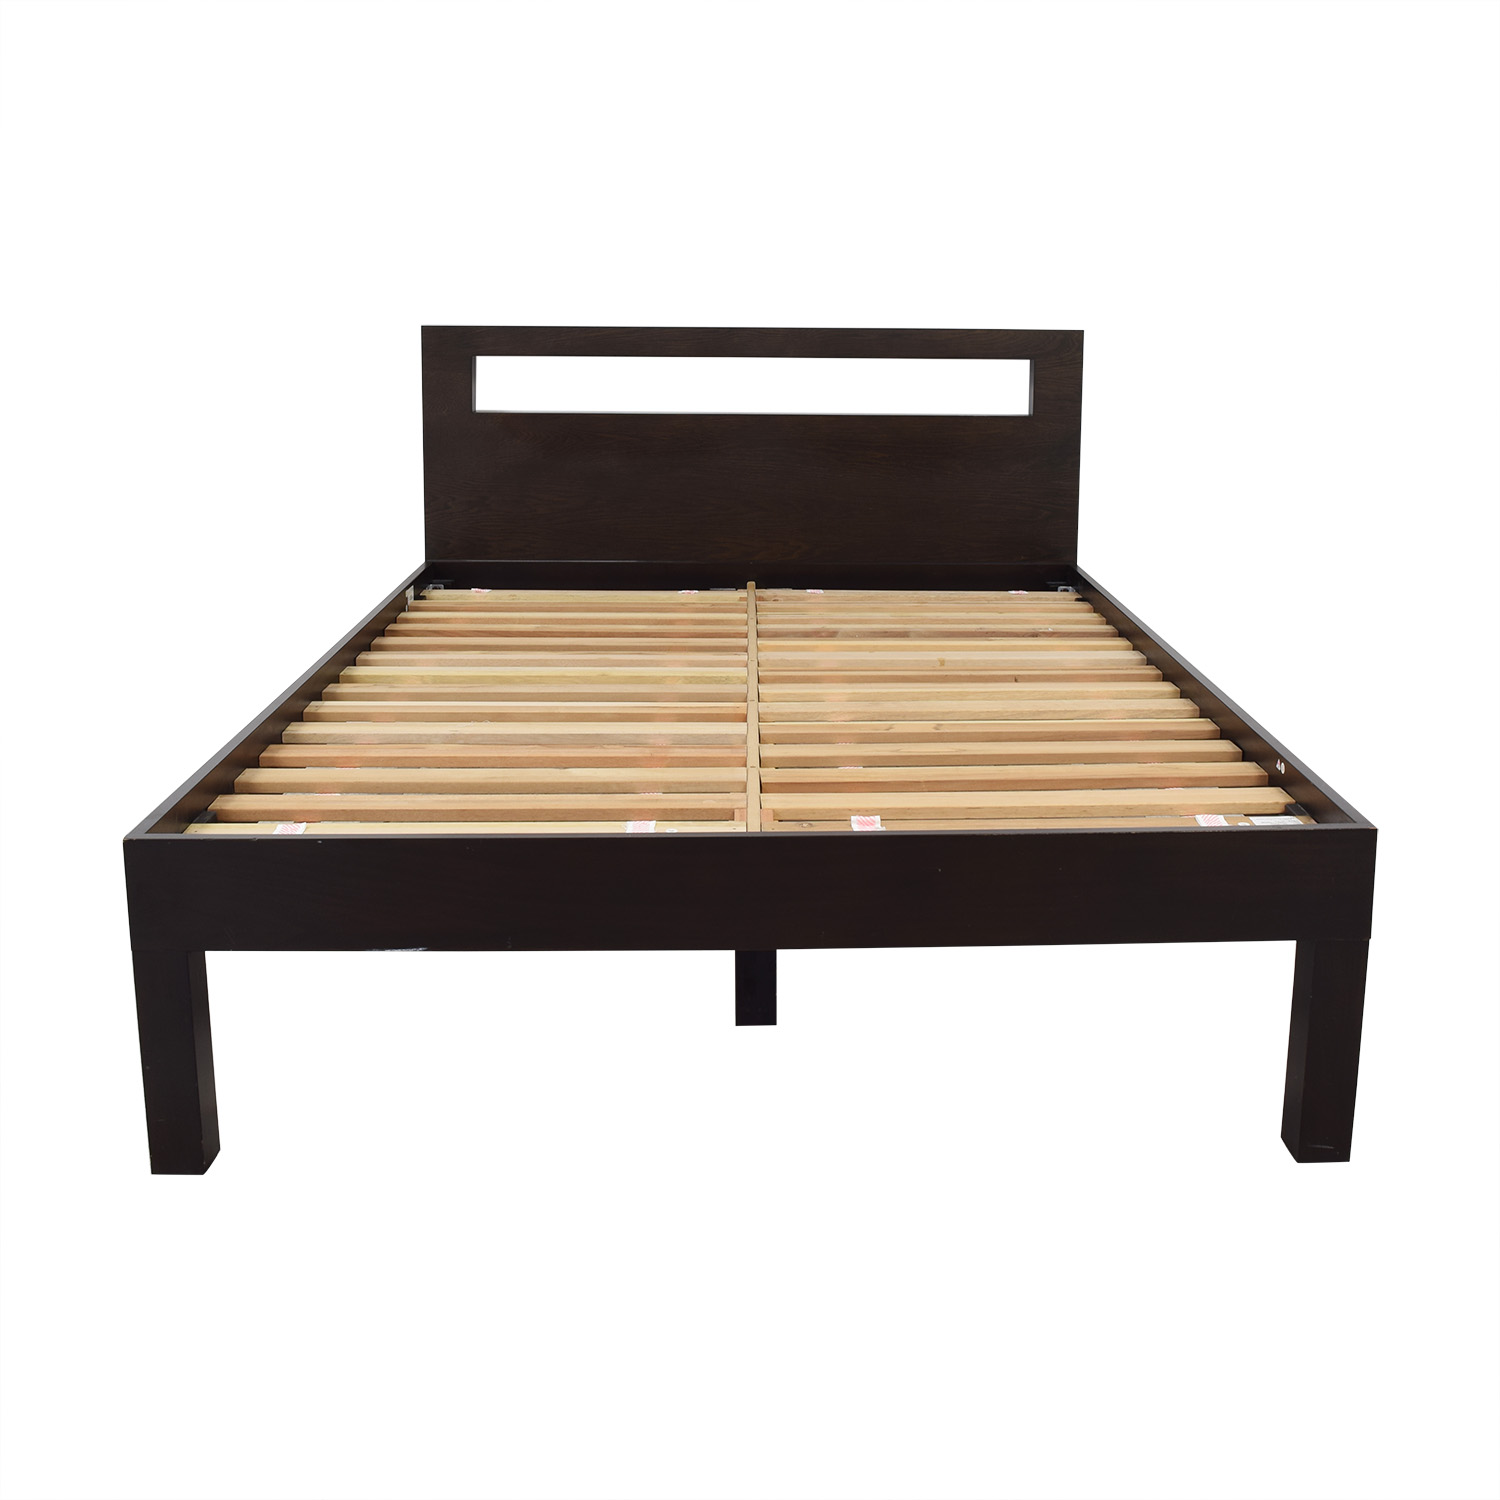 West Elm West Elm Low Wood Cutout Queen Bed price